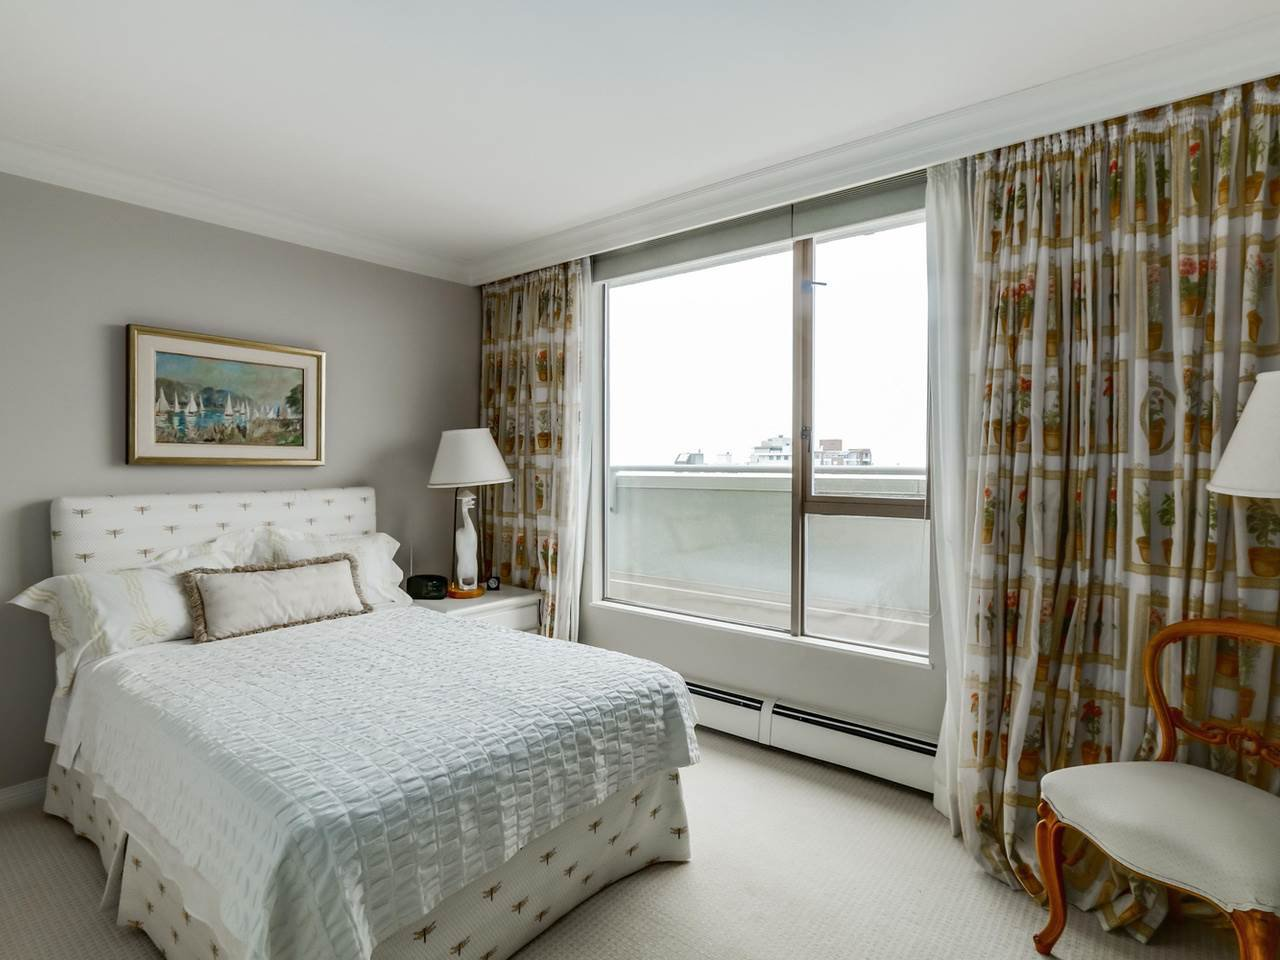 """Photo 12: Photos: PH1 2108 W 38TH Avenue in Vancouver: Kerrisdale Condo for sale in """"THE WILSHIRE"""" (Vancouver West)  : MLS®# R2072443"""